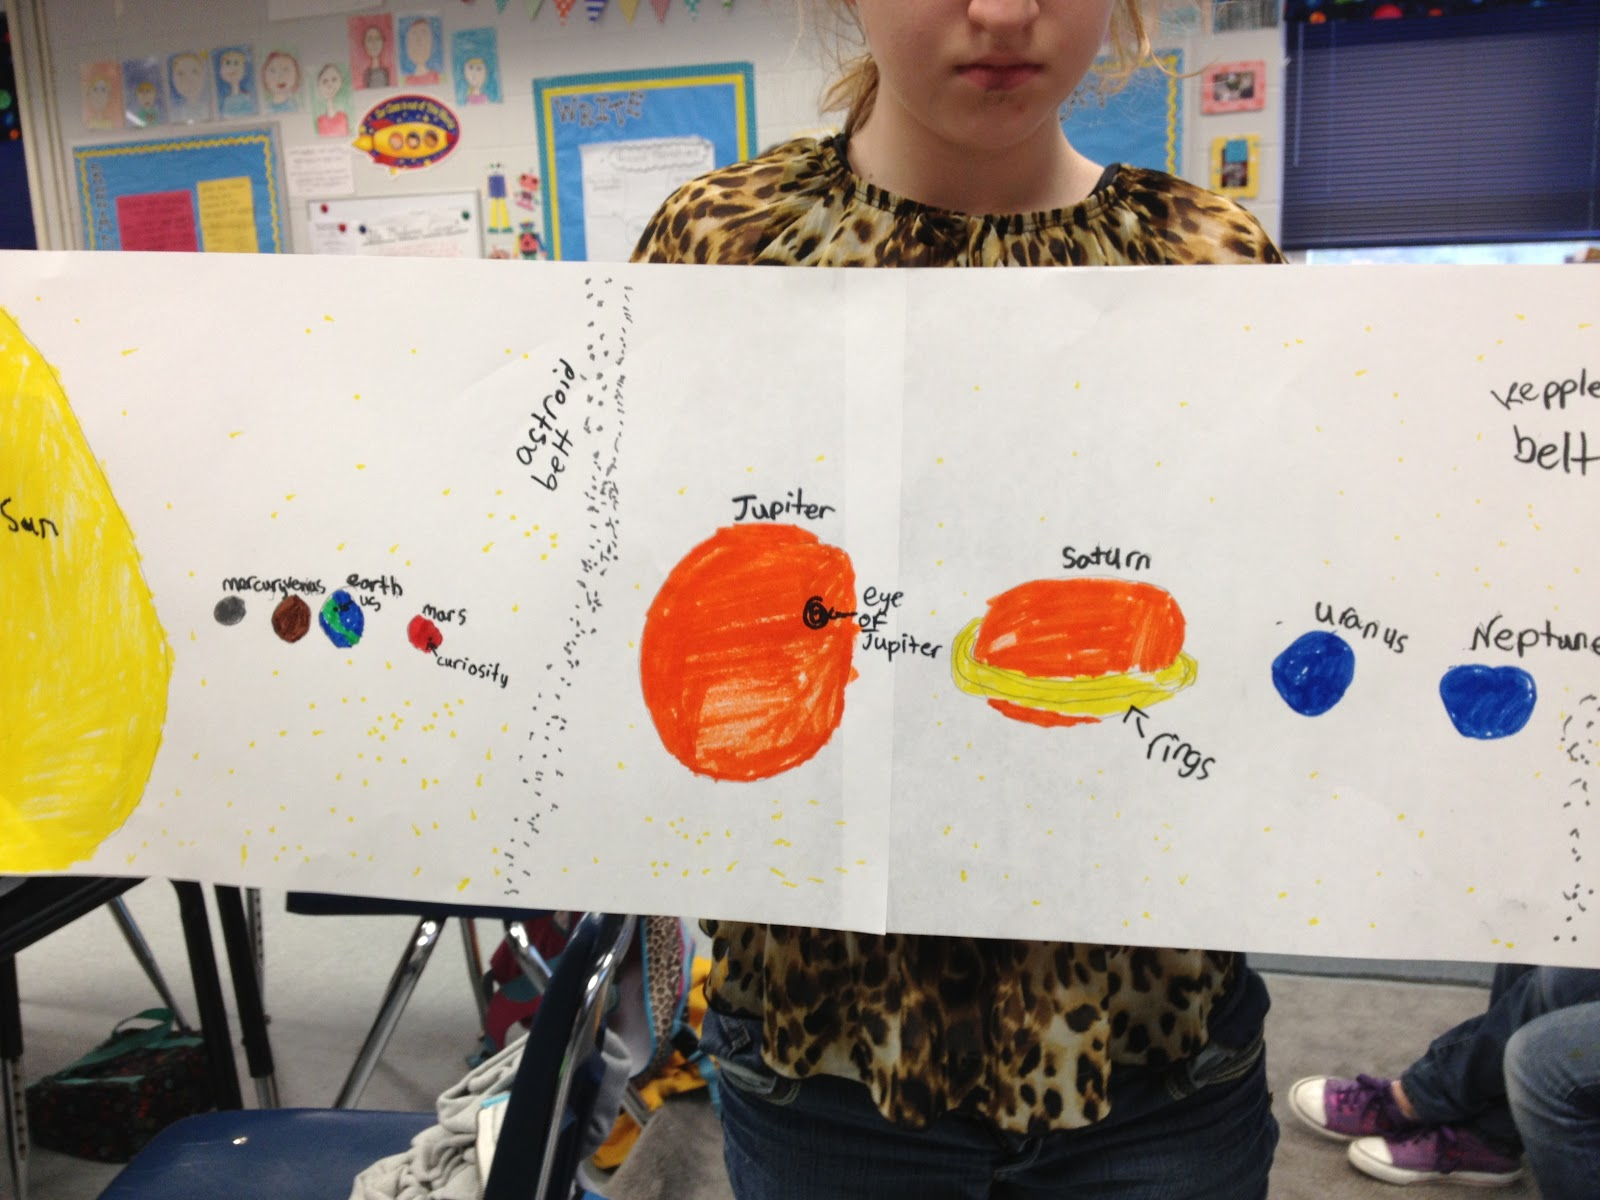 solar system project ideas for 4th grade - photo #29